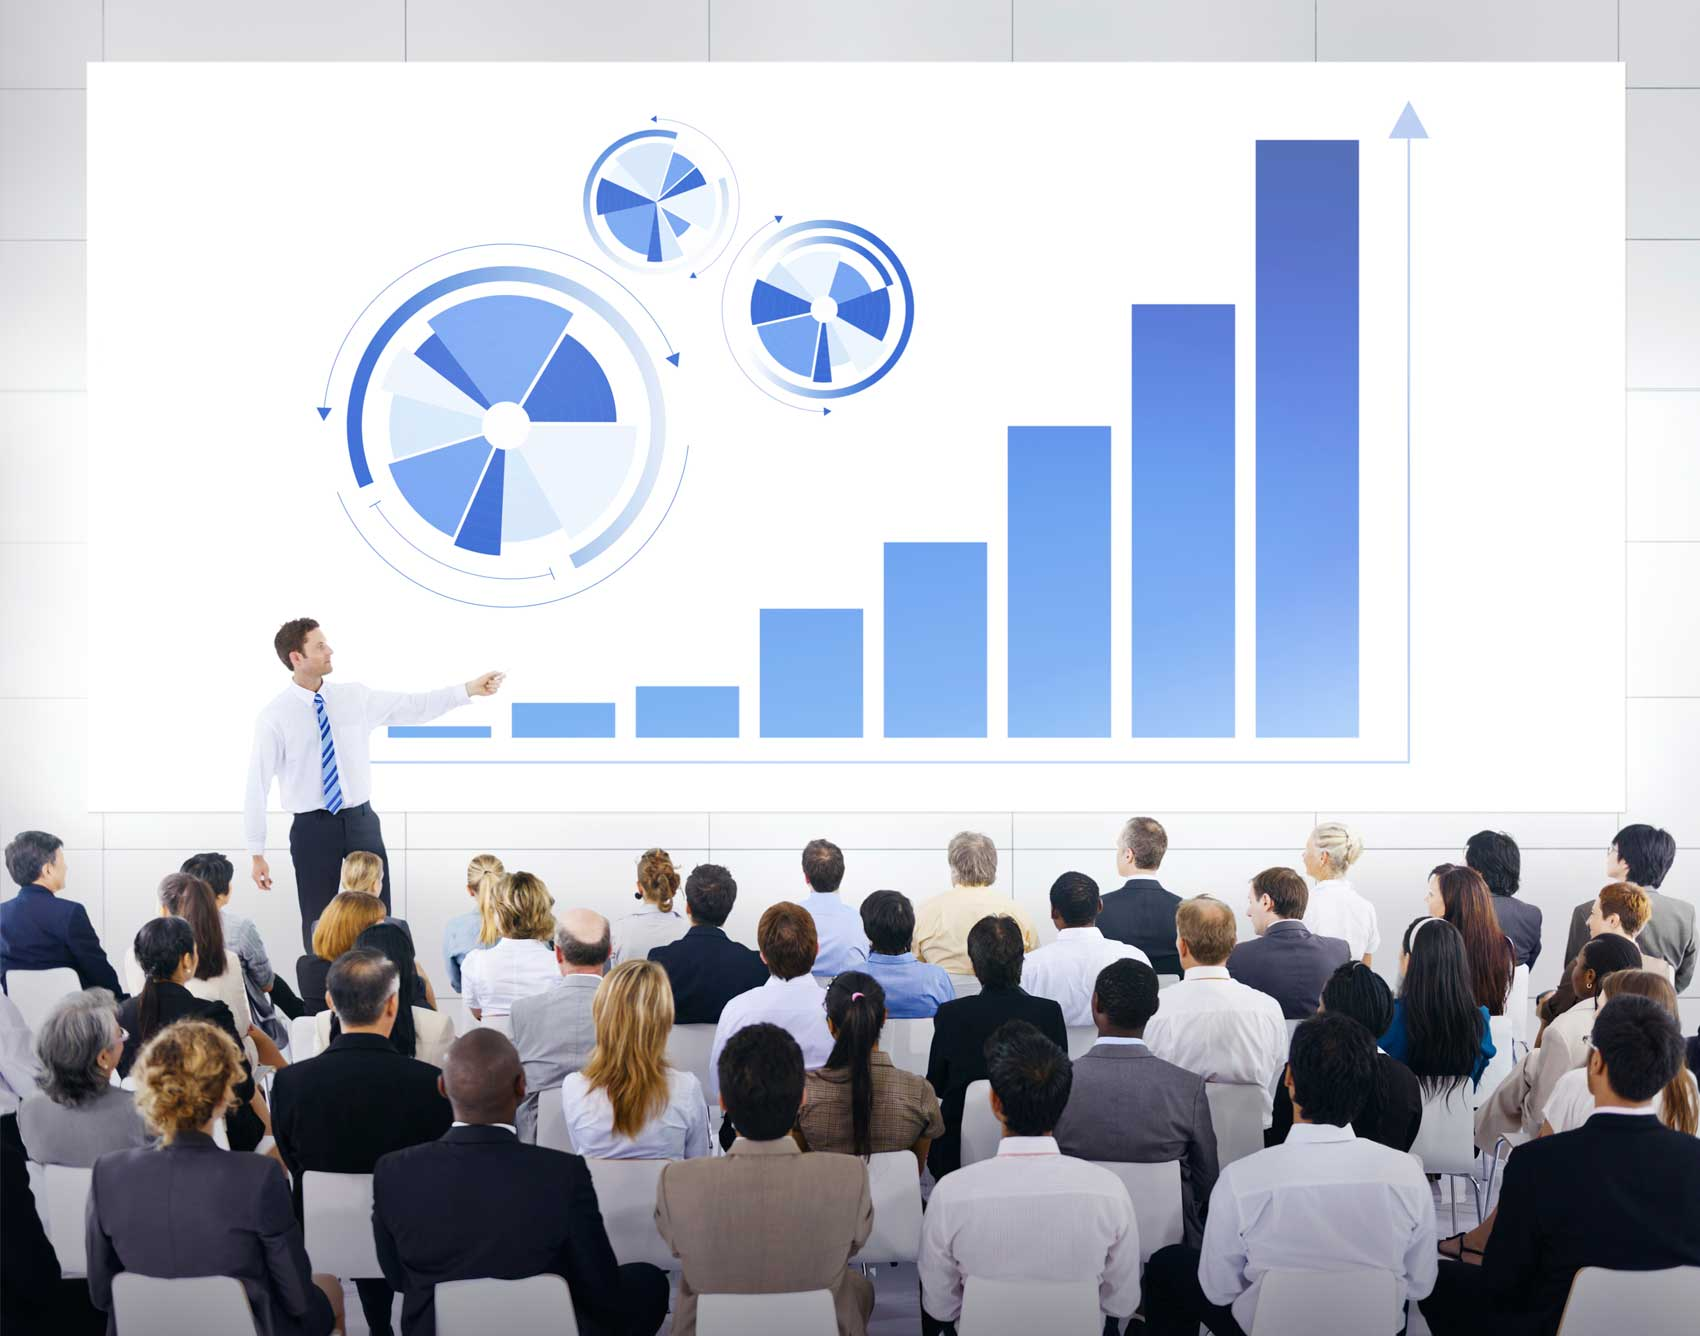 Meetings-and-Event-Image.jpg